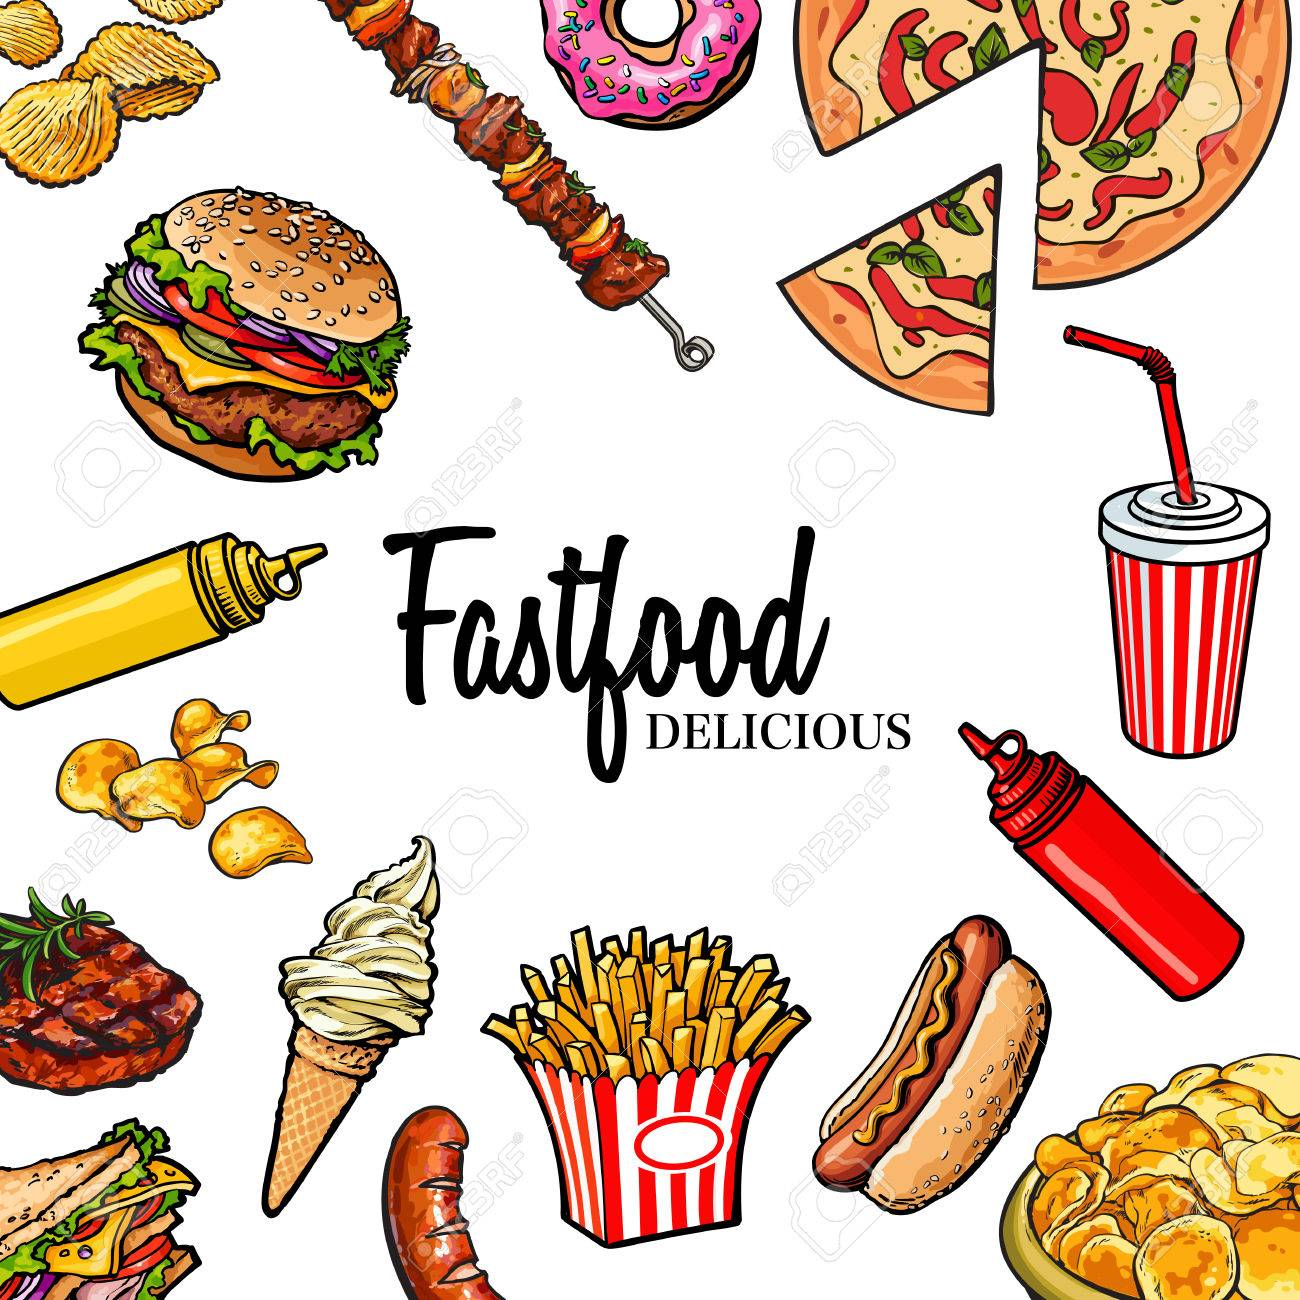 sketch style hand drawn fast food vector frame pizza burger rh 123rf com food vector background food vector background